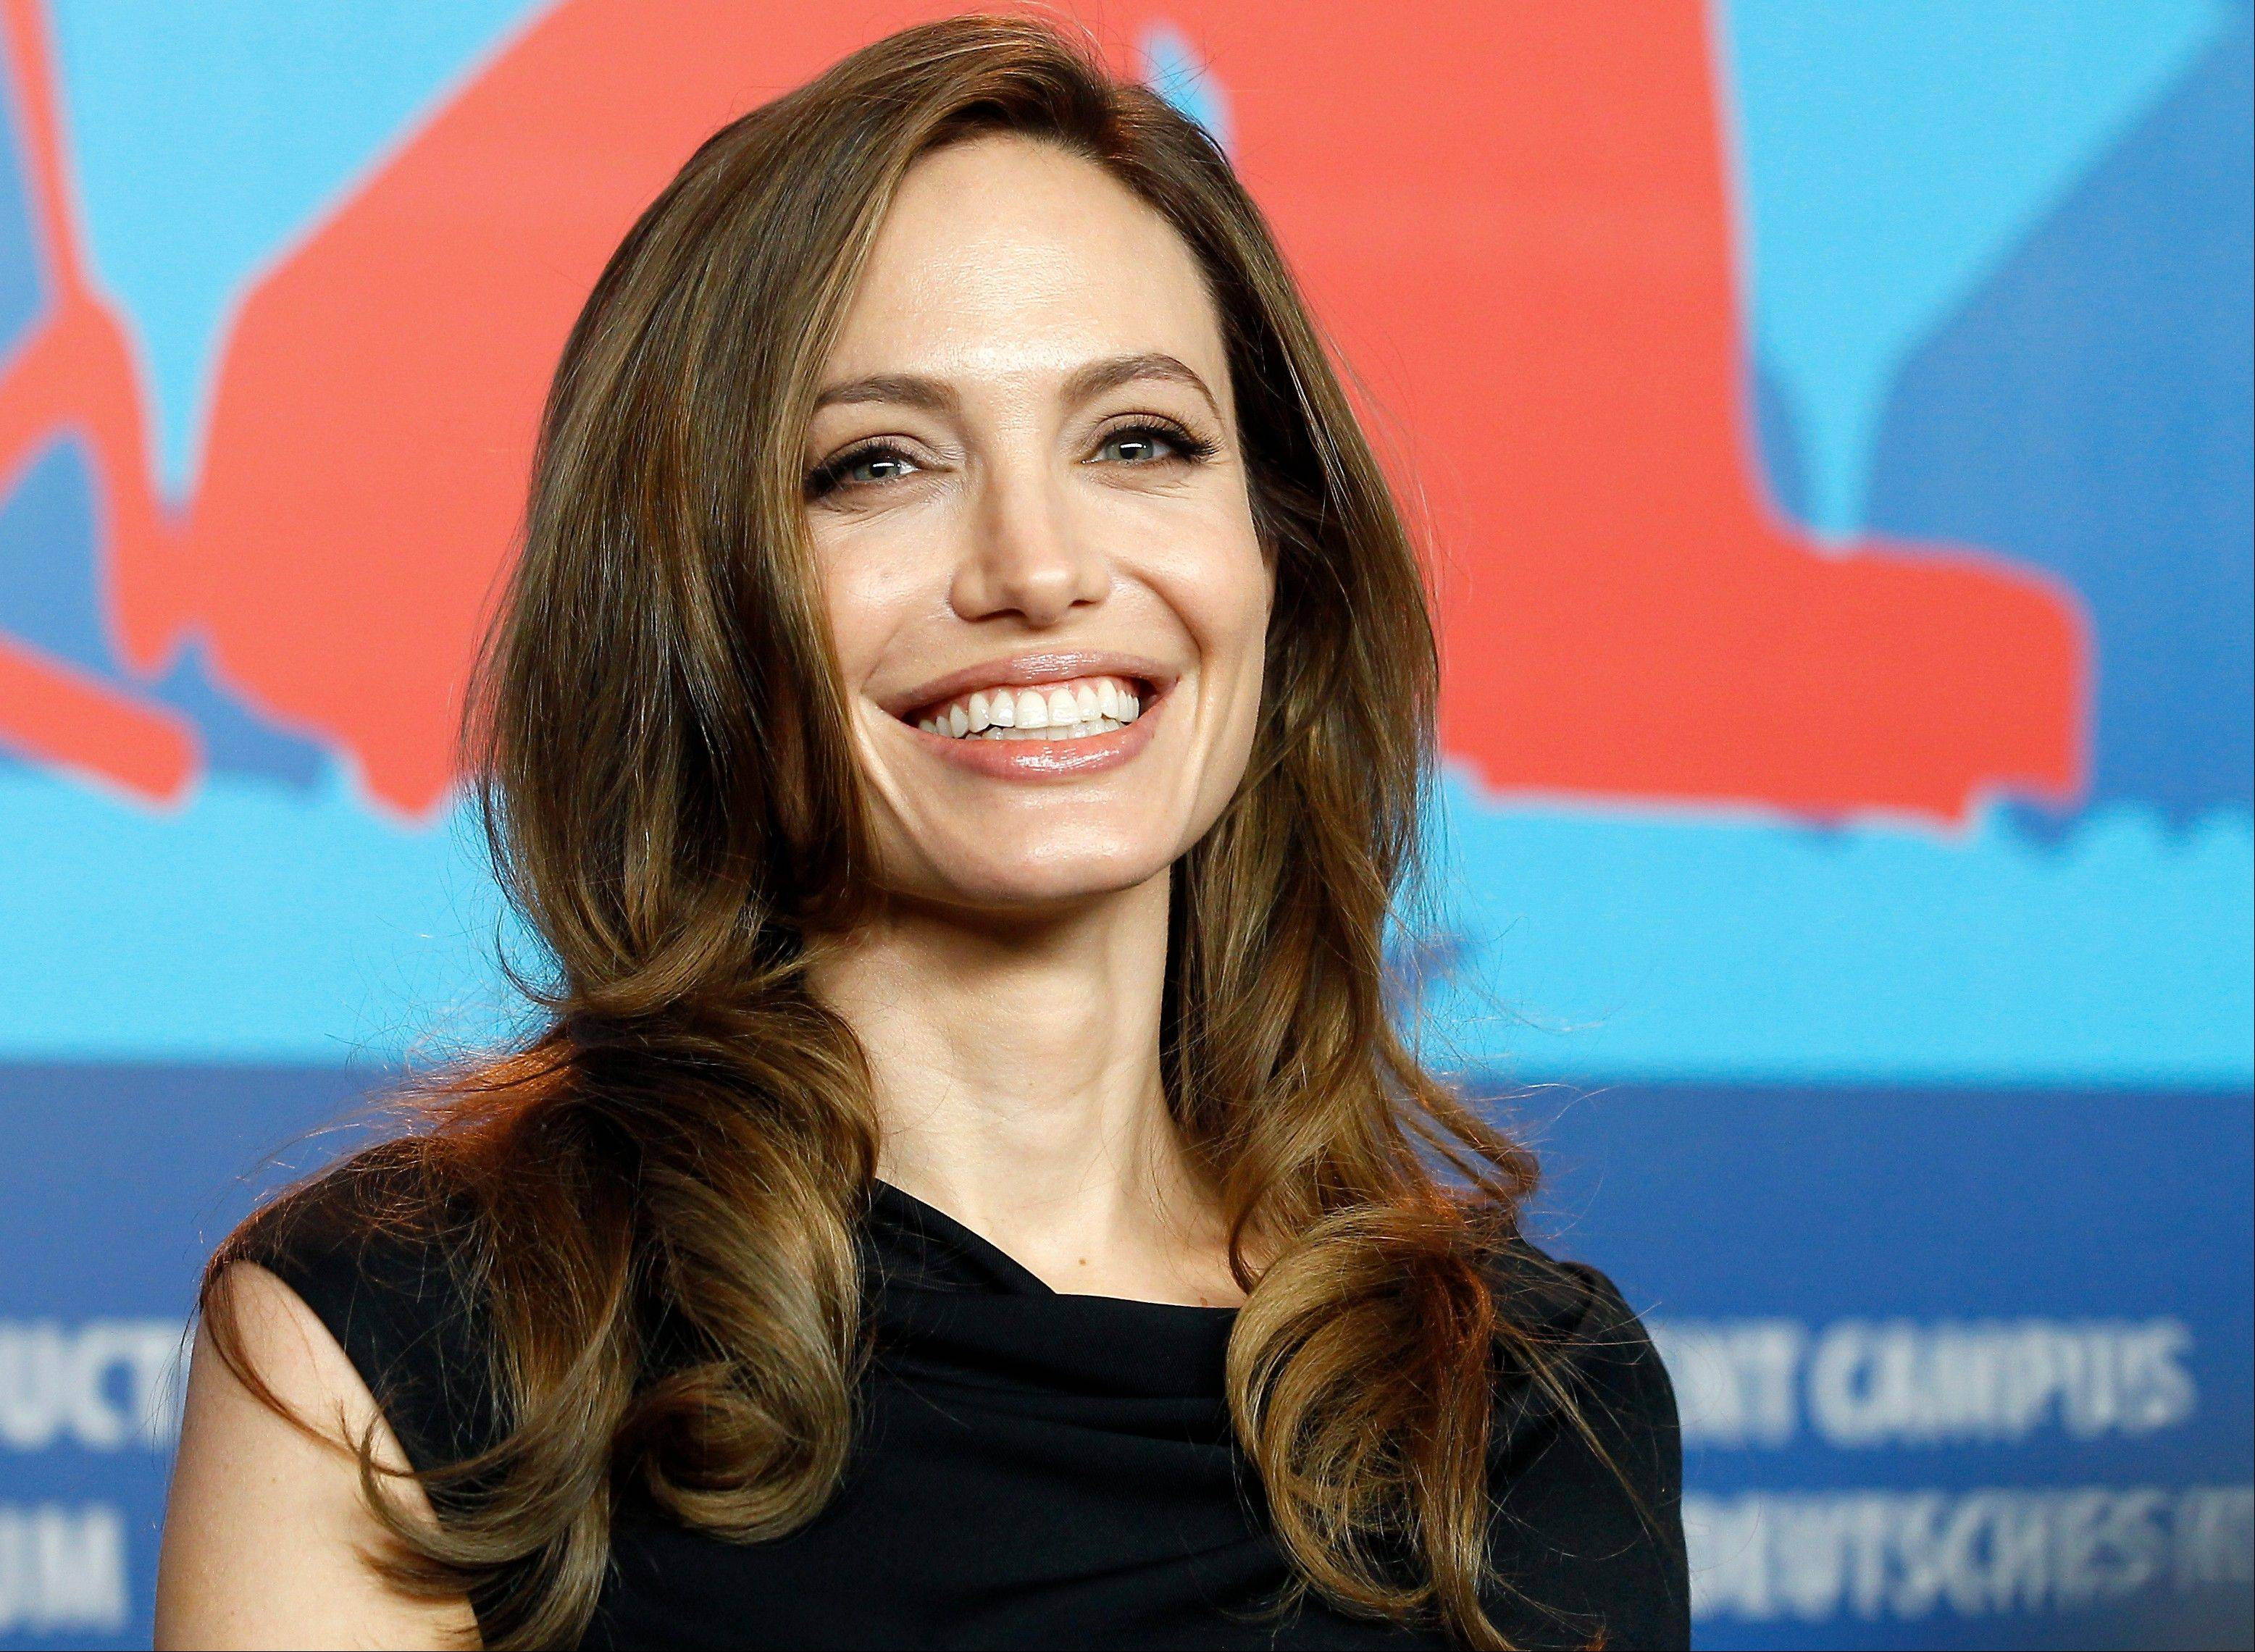 "In this Feb. 11, 2011 file photo, Director Angelina Jolie smiles during the press conference of the film ""In the Land of Blood and Honey,"" at the 62 edition of the Berlinale, International Film Festival in Berlin. The Board of Governors of the Academy of Motion Picture Arts and Sciences will present Honorary Awards to Angela Lansbury, Steve Martin and Piero Tosi, and the Jean Hersholt Humanitarian Award to Jolie. All four awards will be presented at the Academy's 5th Annual Governors Awards on Saturday, November 16, 2013, at the Ray Dolby Ballroom at the Hollywood & Highland Center in the Hollywood section of Los Angeles."